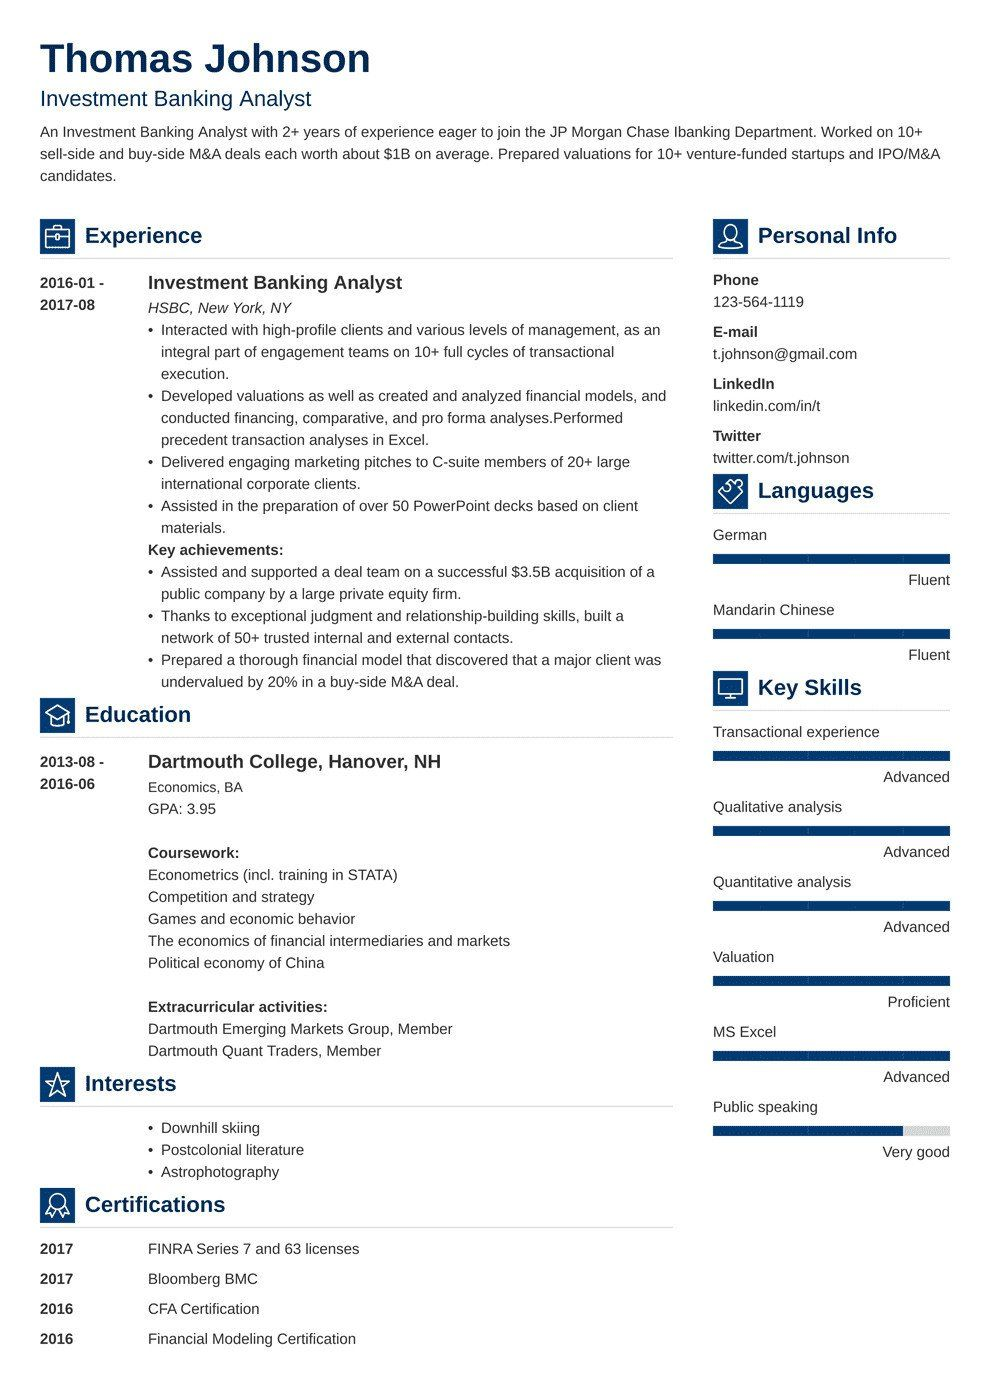 32 Luxury Investment Banking Resume Template in 2020